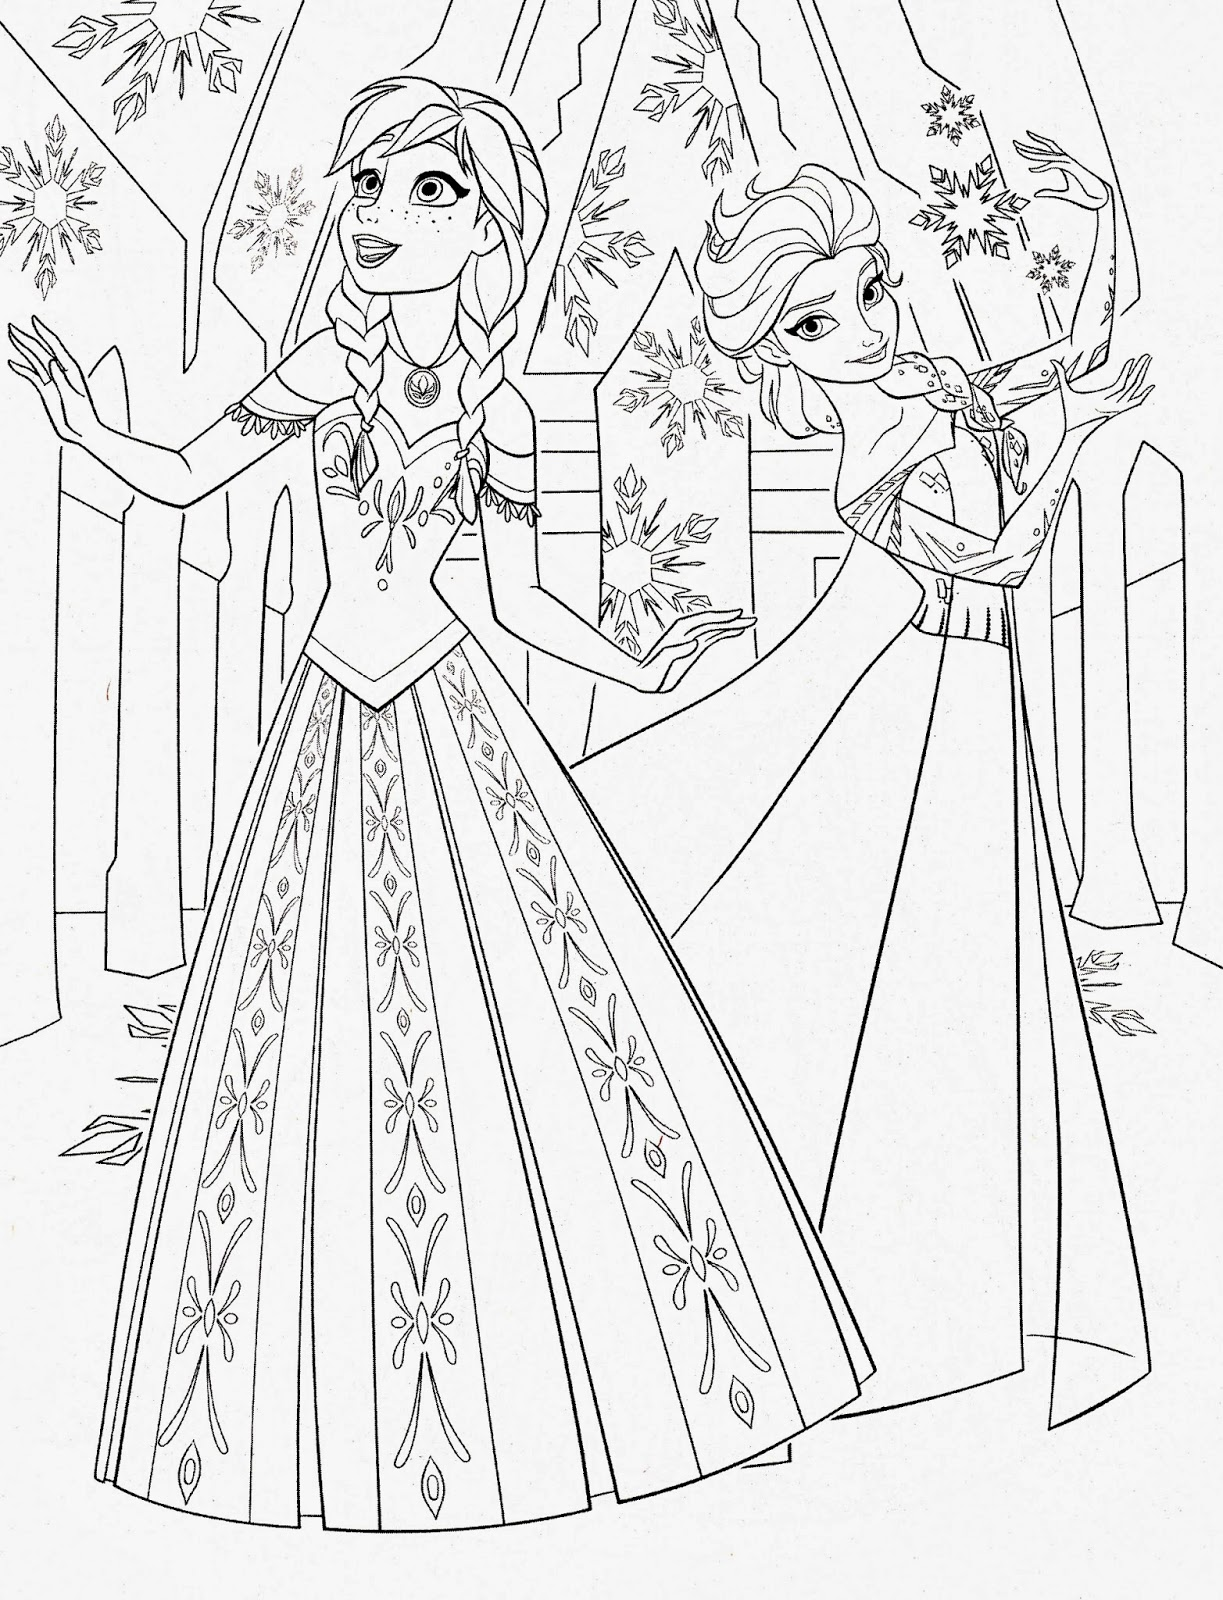 frozen coloring images frozen coloring pages free printables at getdrawings coloring images frozen